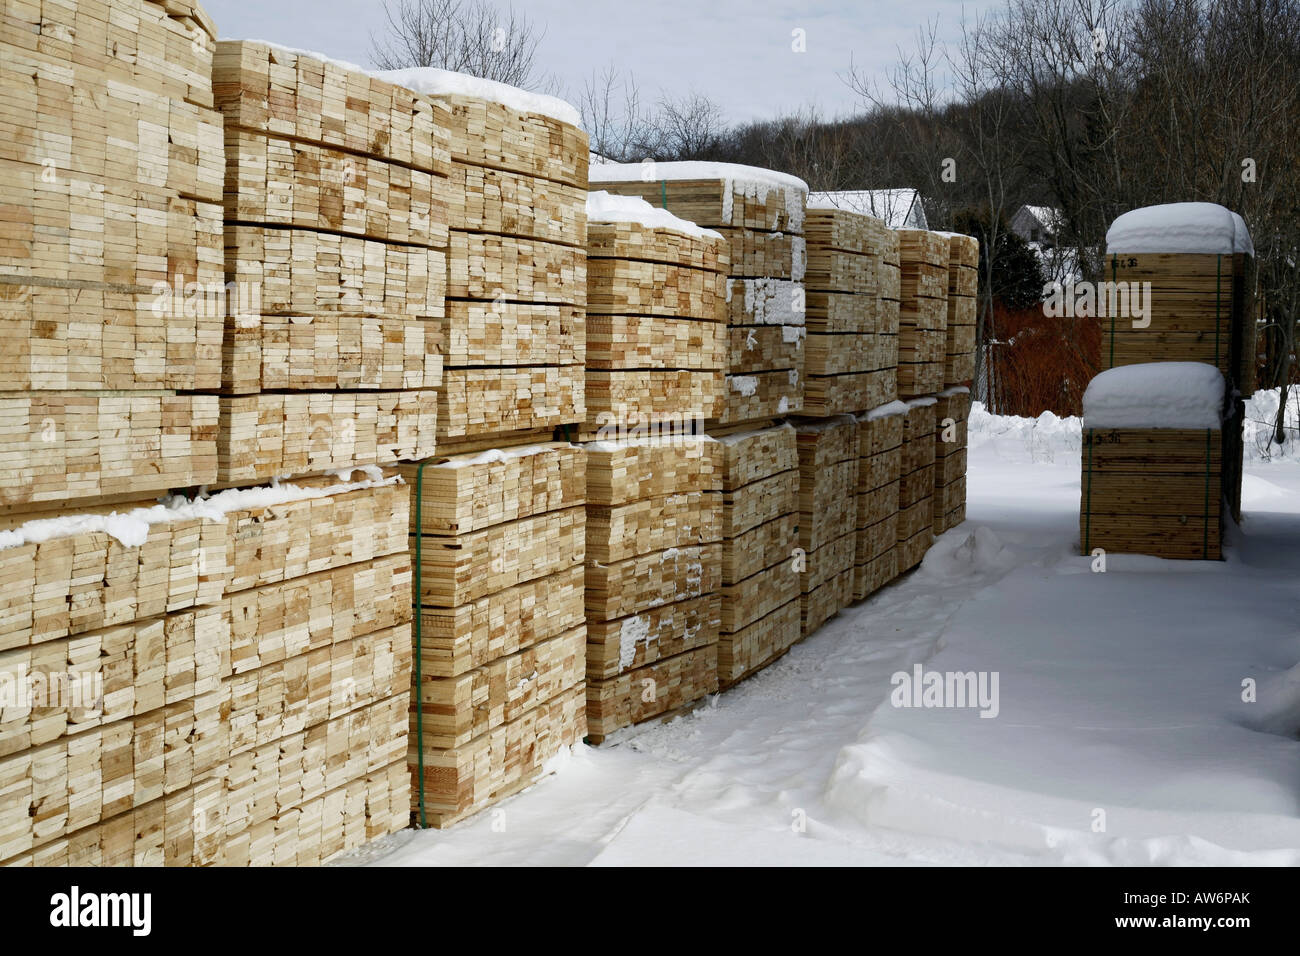 Softwood lumber in piles at winter - Stock Image